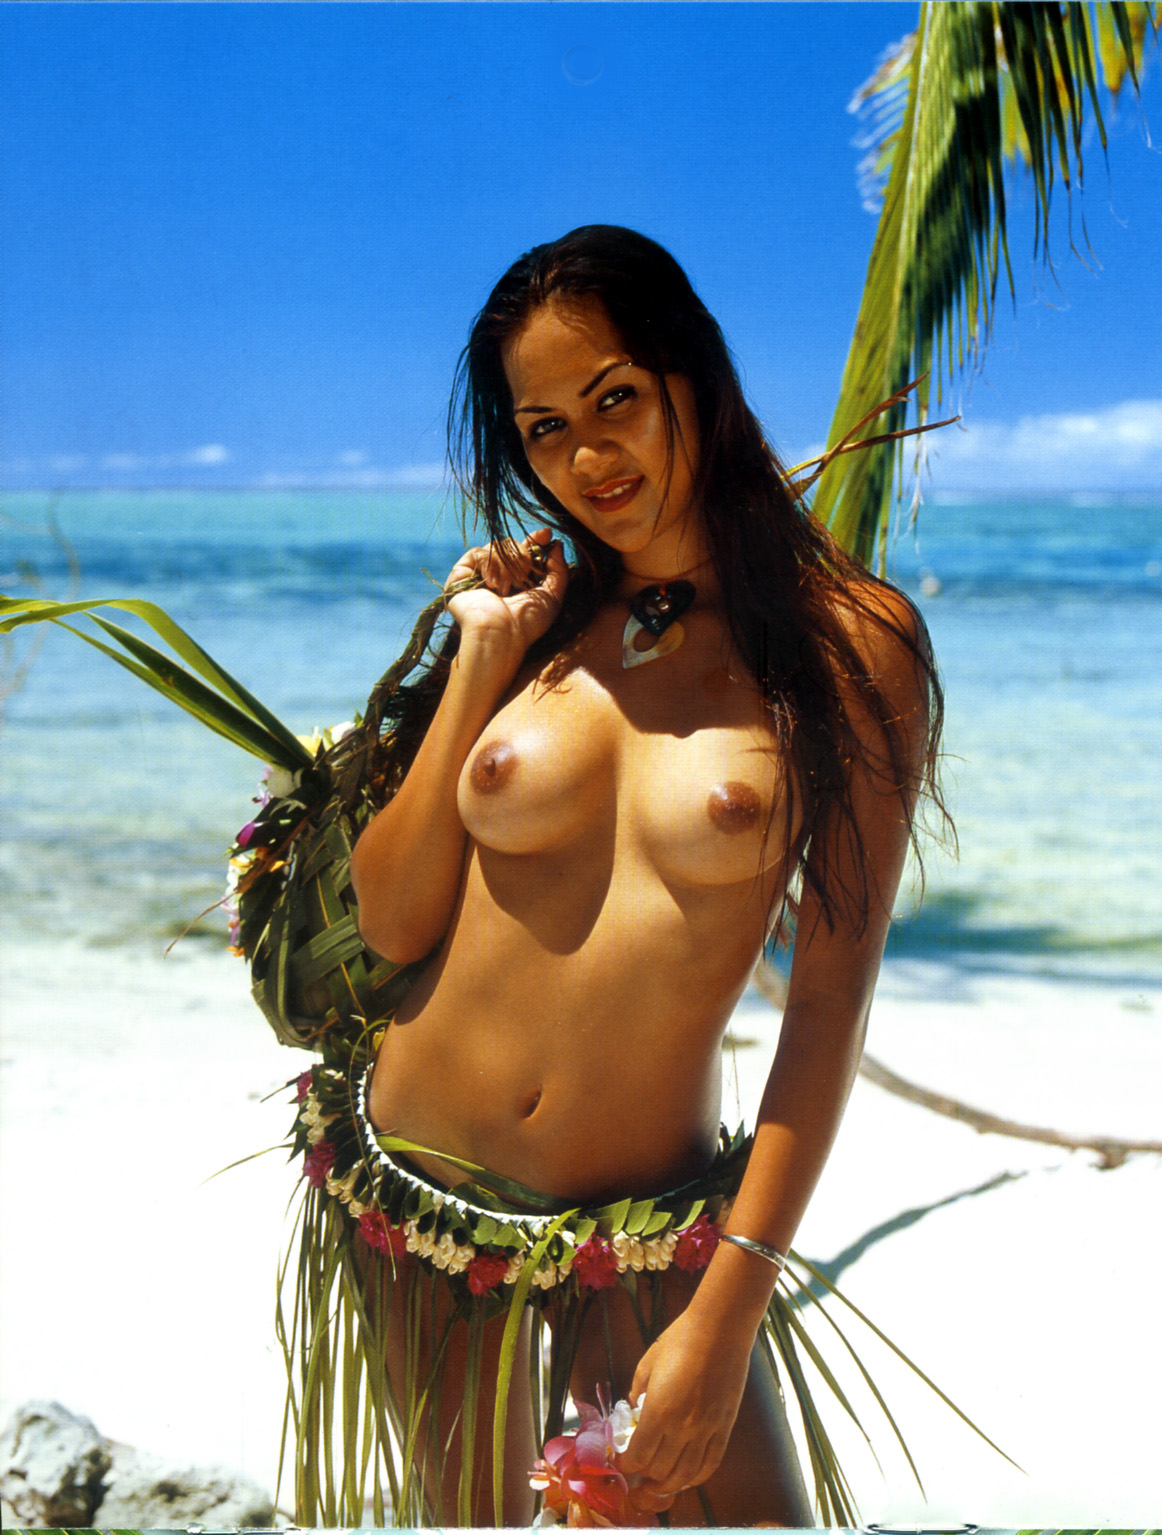 porno-pacific-fiji-islands-girls-pics